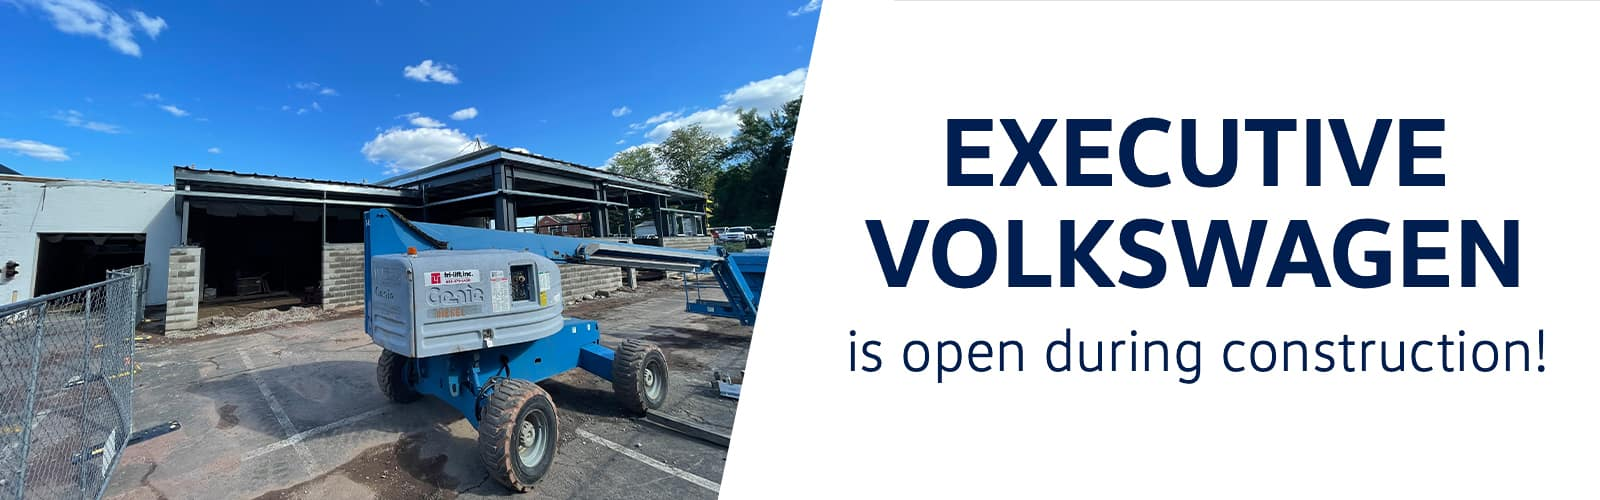 EAG_VW_open-during-construction